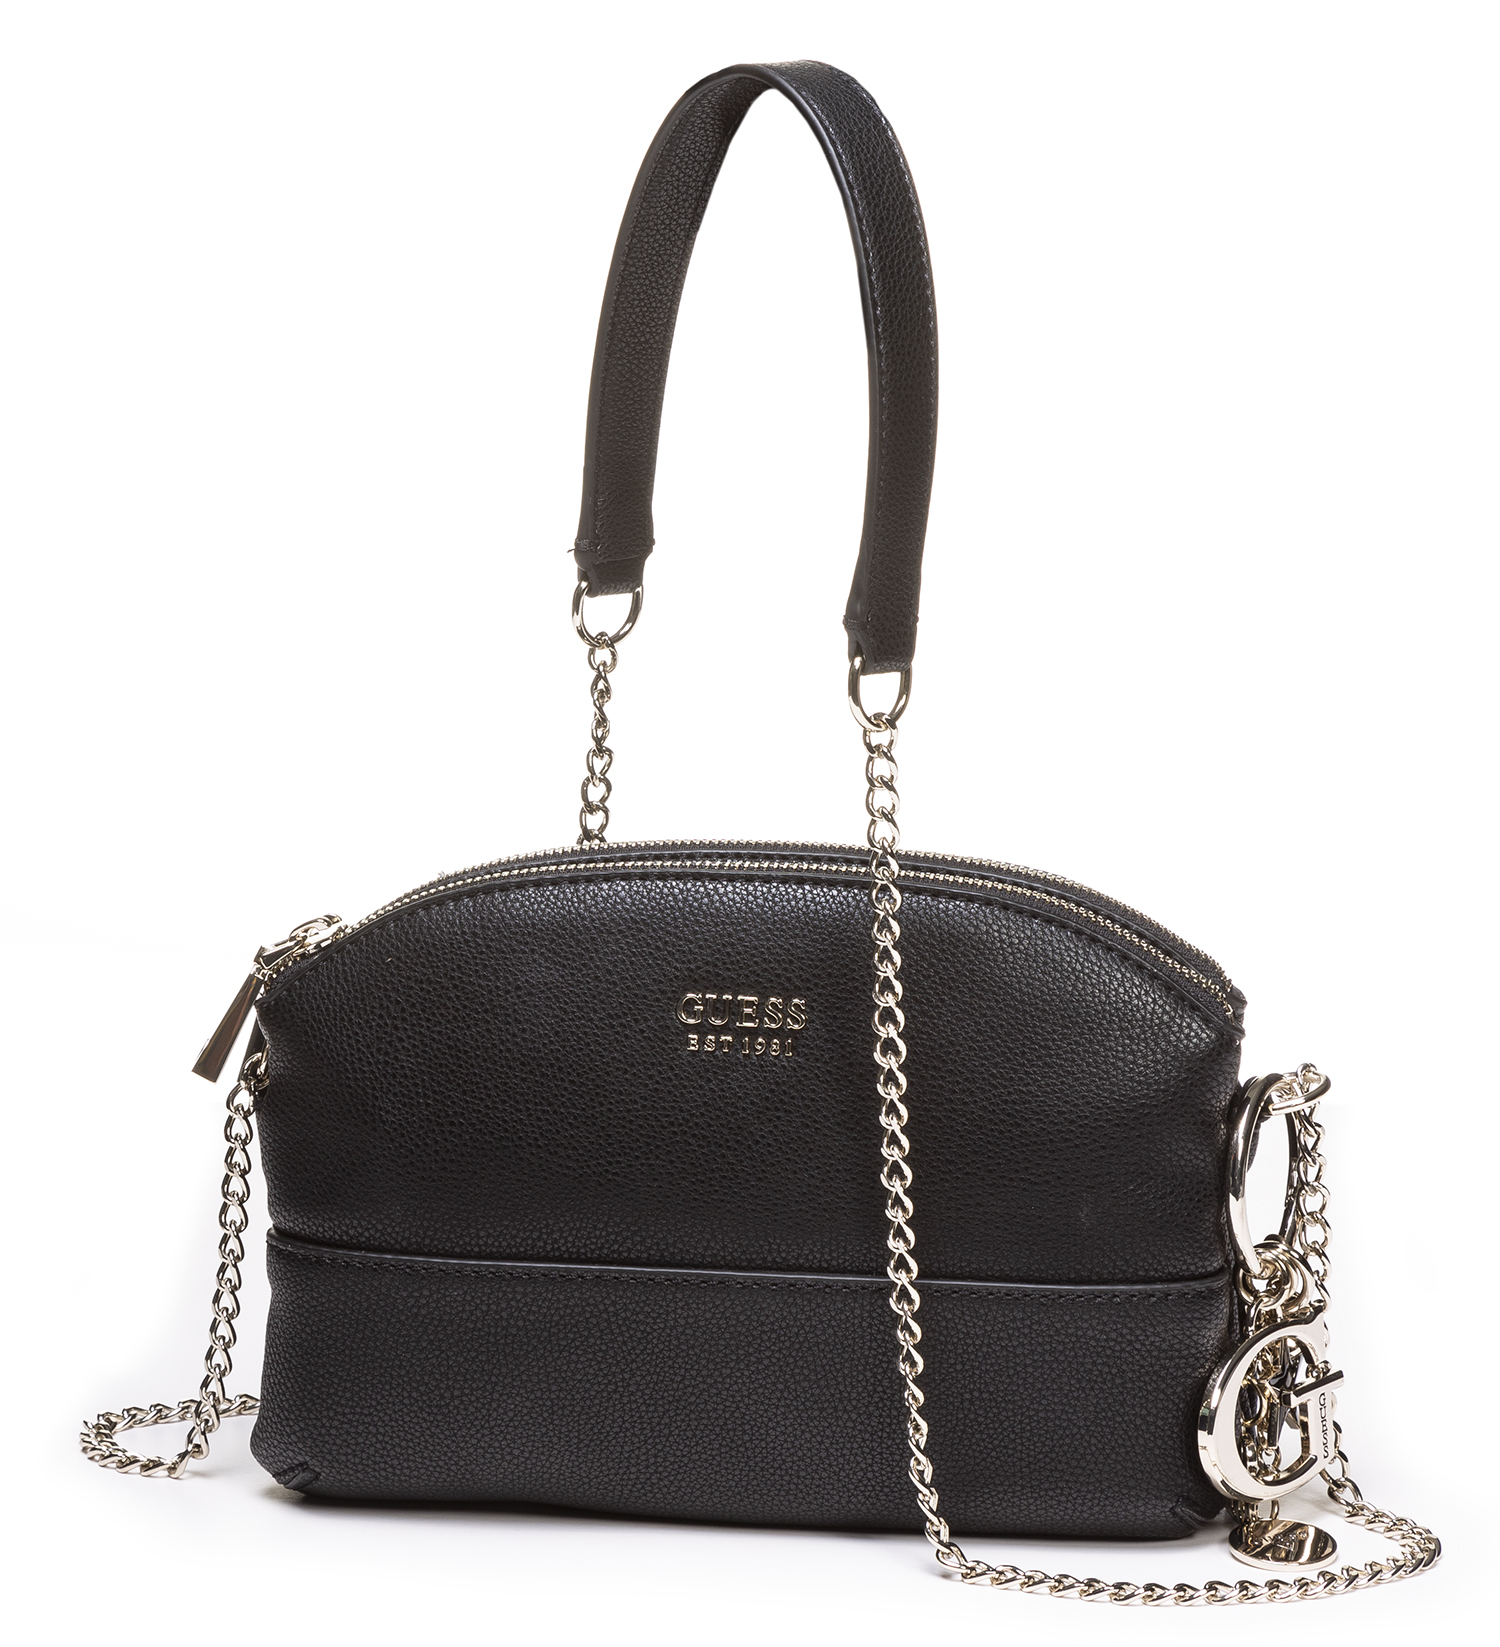 Gues Pieni Laukku, Lila Mini Double Zip Crossbody Musta